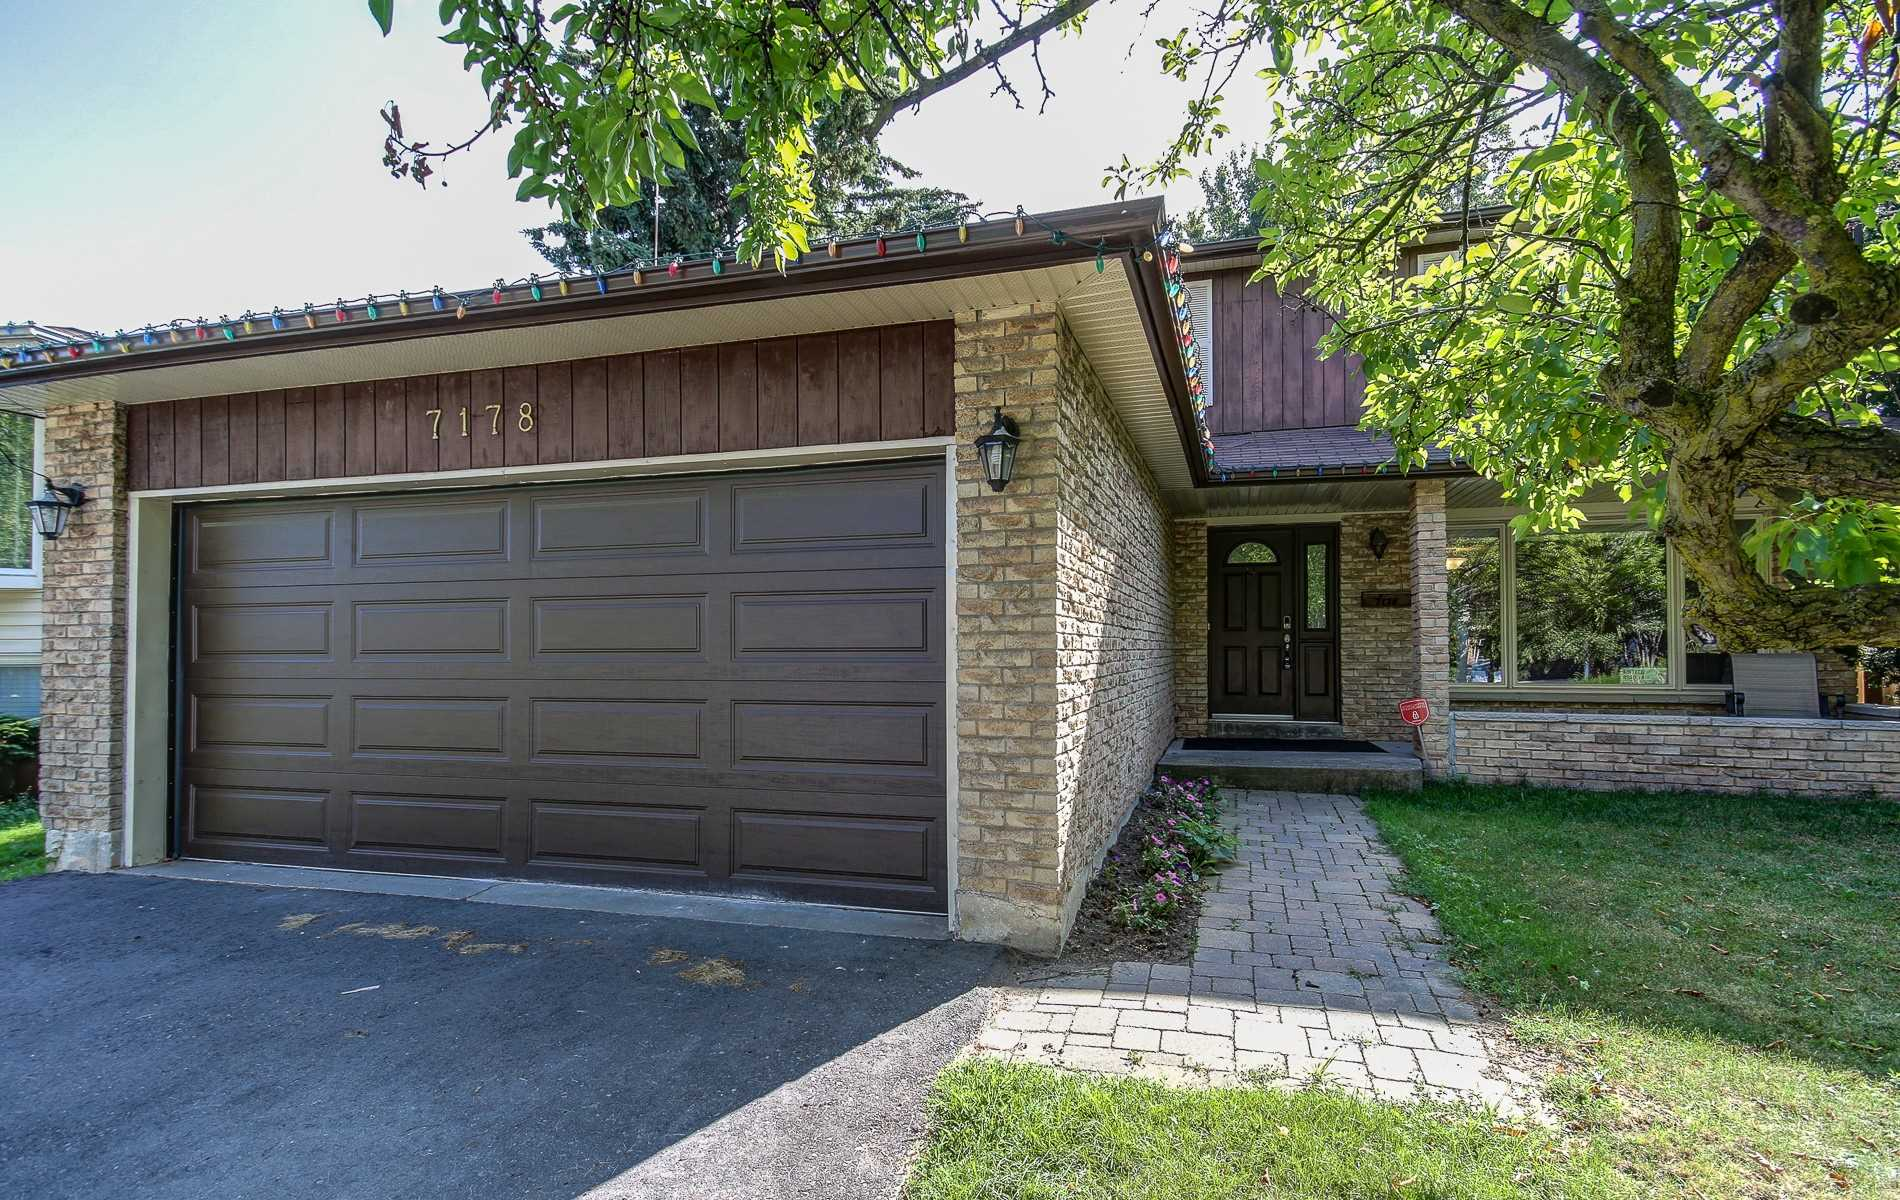 For Sale: 7178 Ridgeland Crescent, Mississauga, ON   4 Bed, 3 Bath House for $959900.00. See 20 photos!